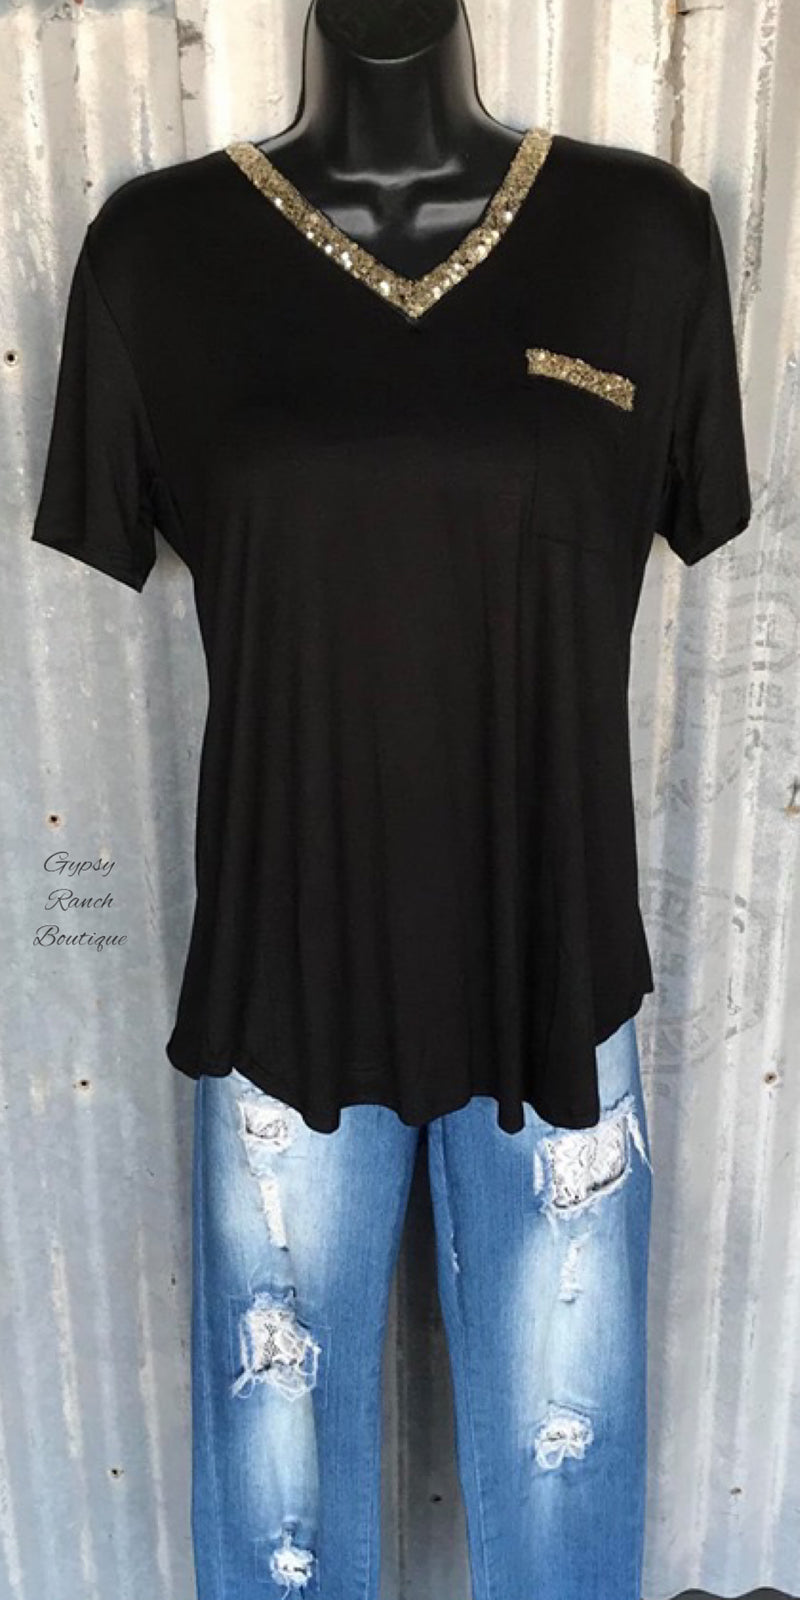 Keep Things Simple Black Sequin Top - Also in Plus Size